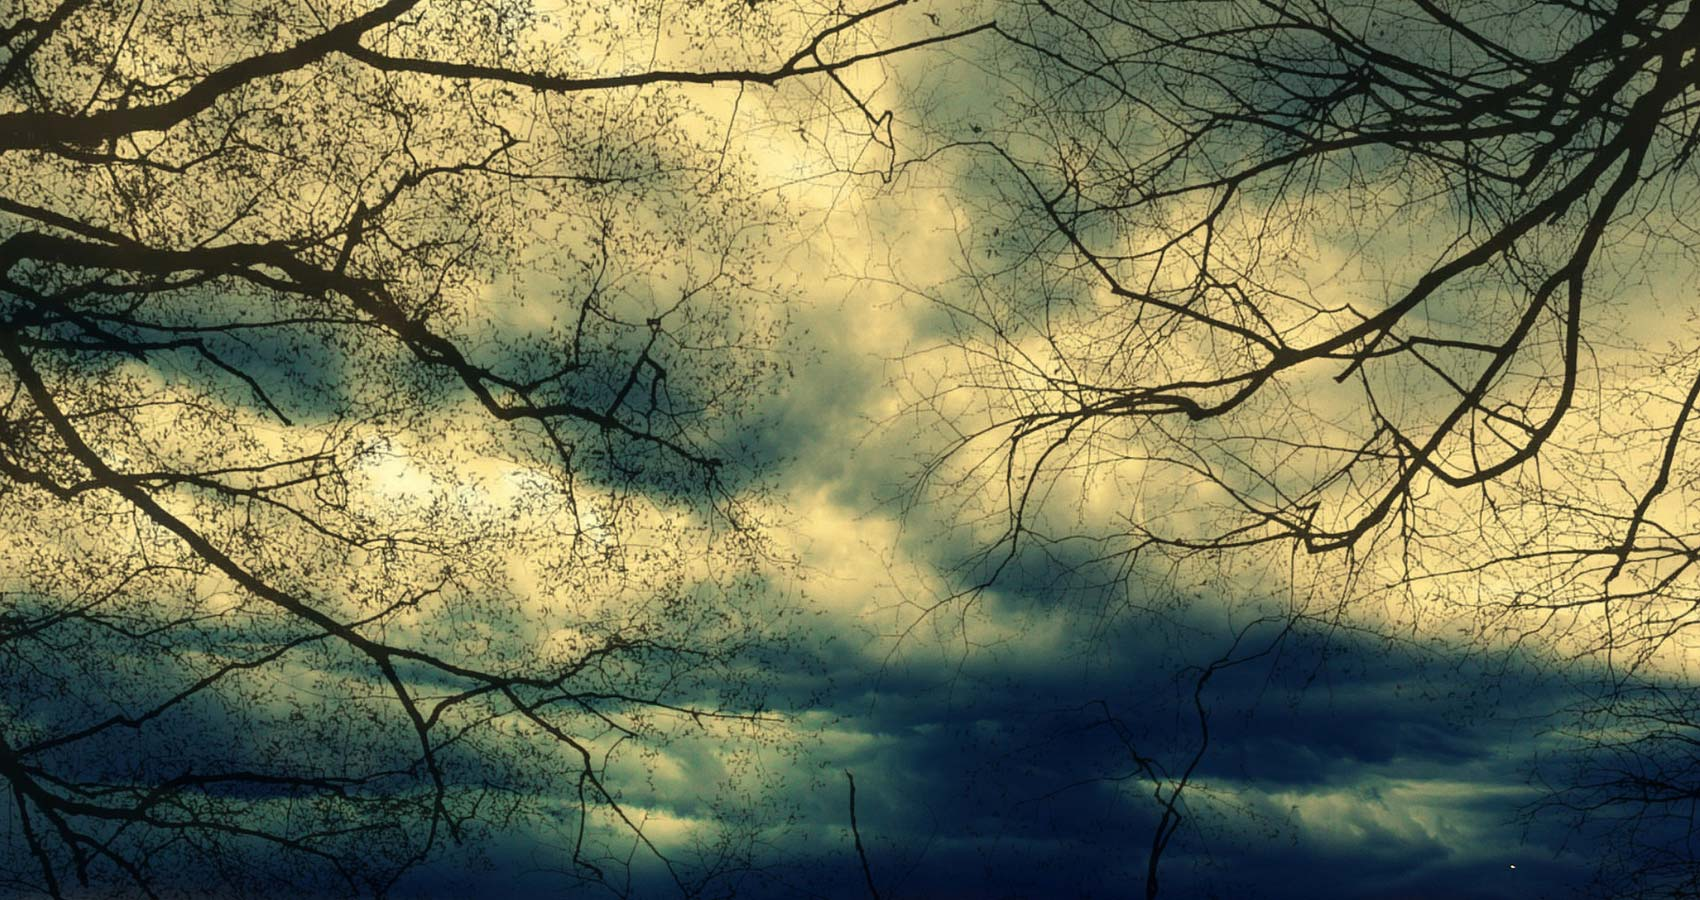 Building up of an April Storm, fiction by Pranab Ghosh at Spillwords.com